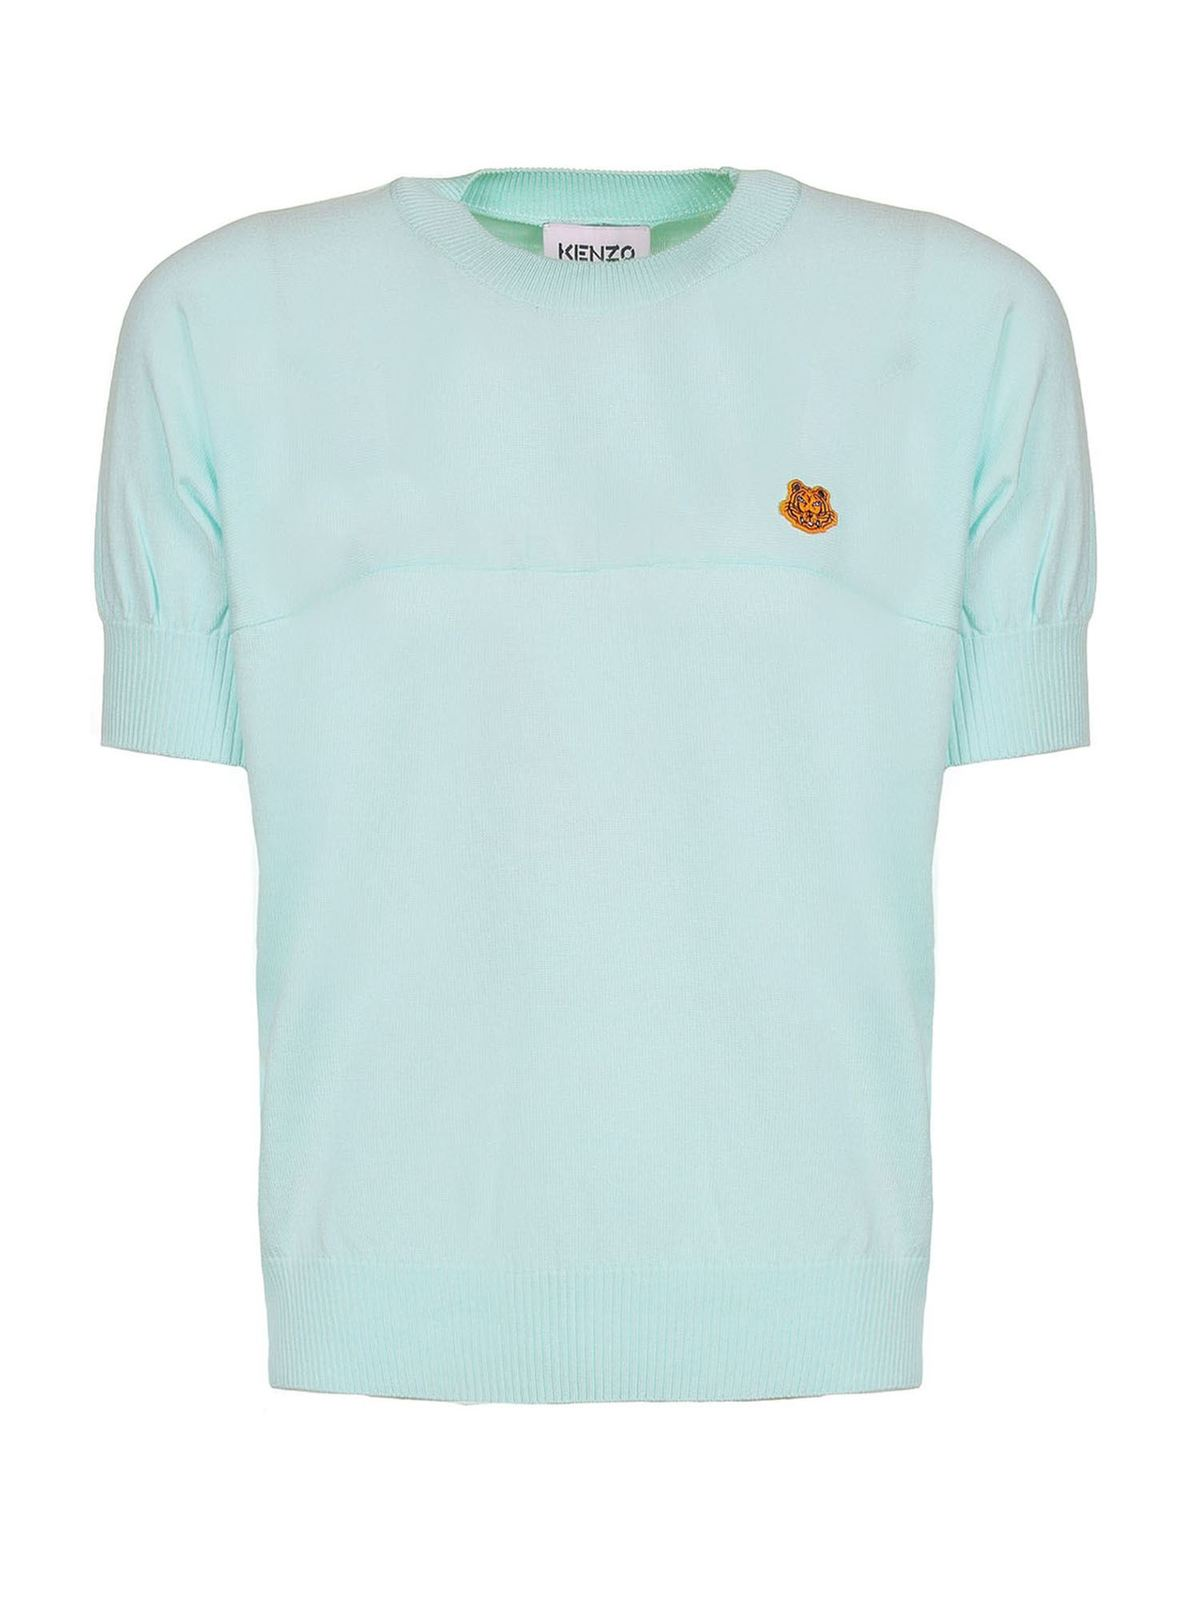 Kenzo TIGER CREST SWEATER IN MINT COLOR